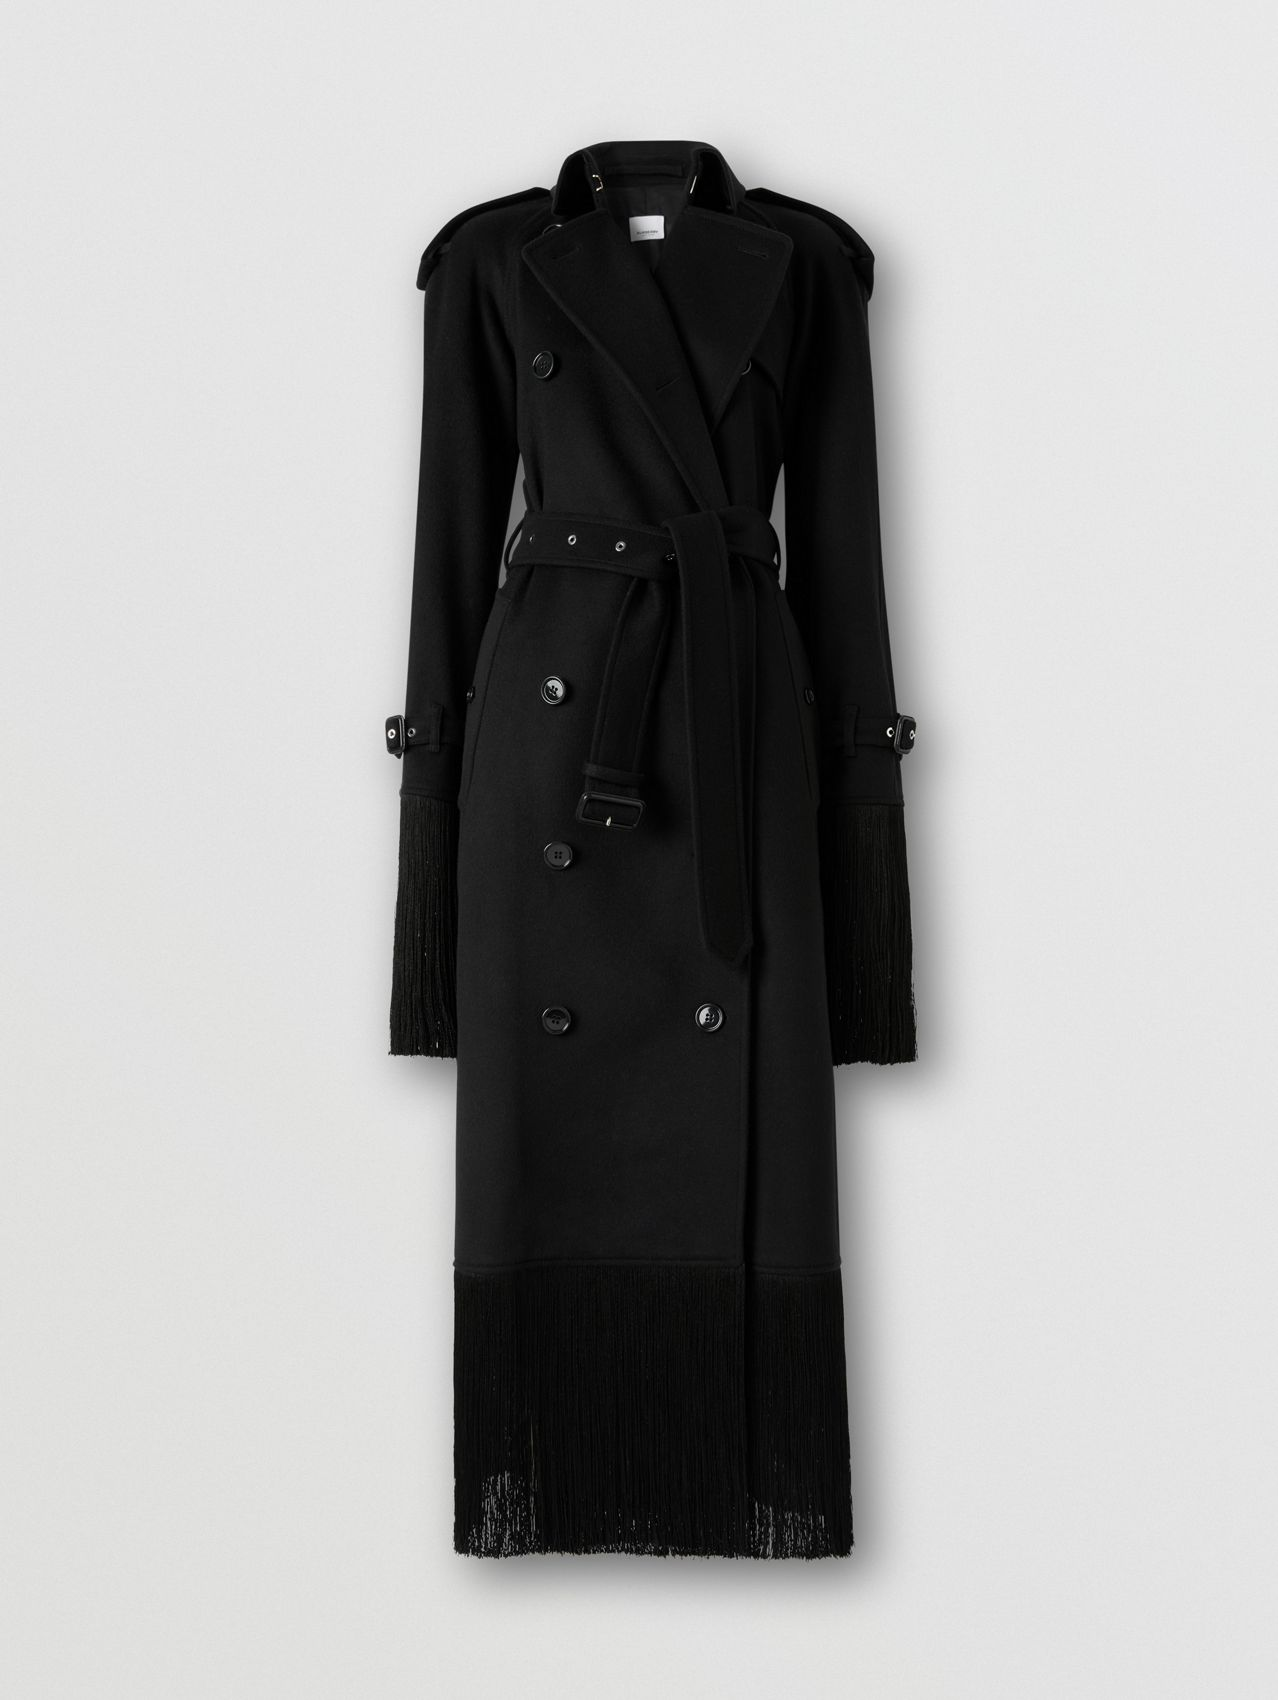 Fringed Wool Cashmere Trench Coat (Black)